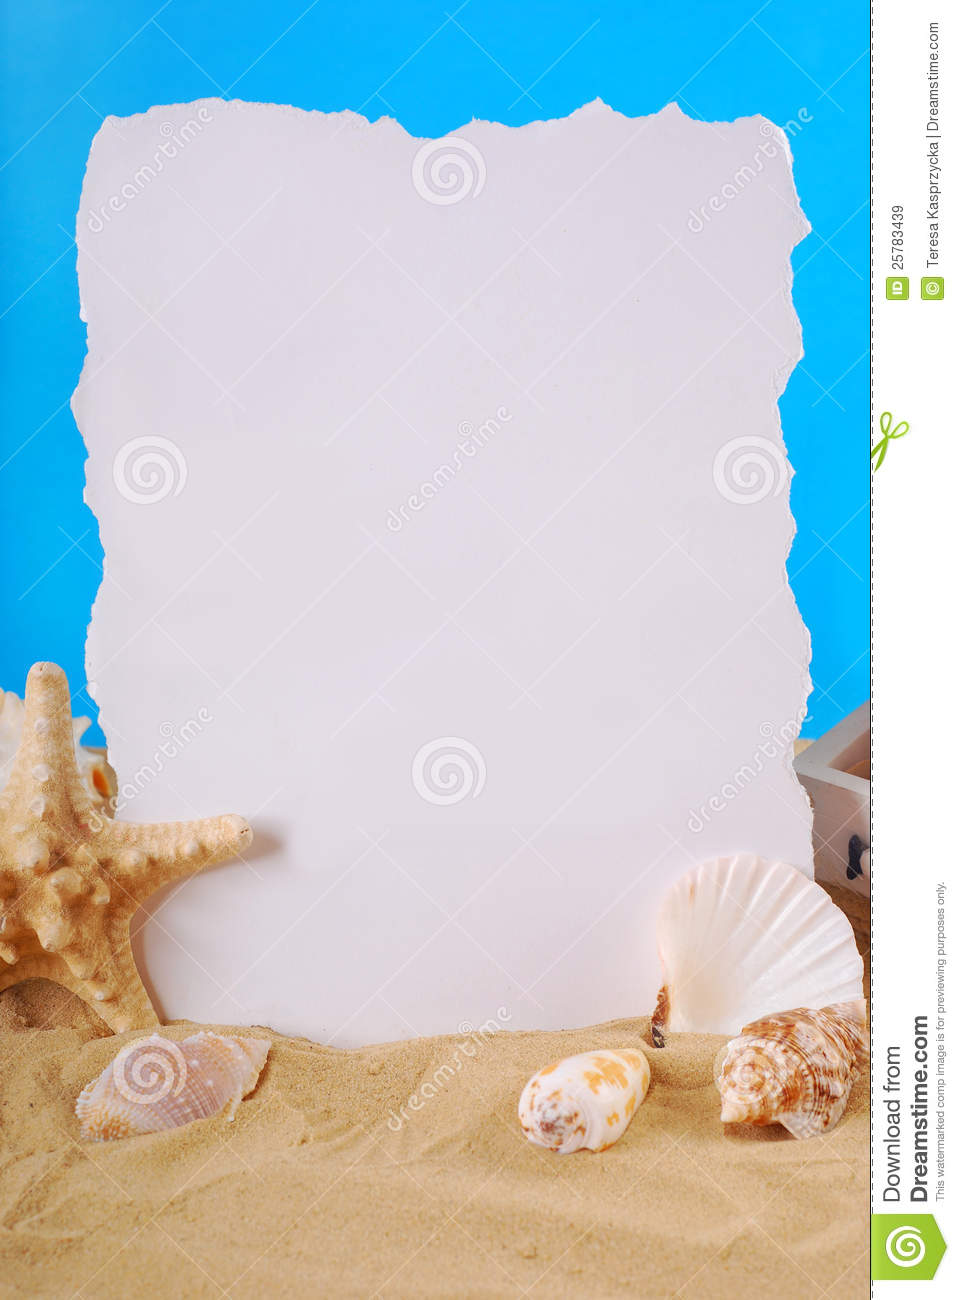 summer holidays frame royalty free stock images image 25783439